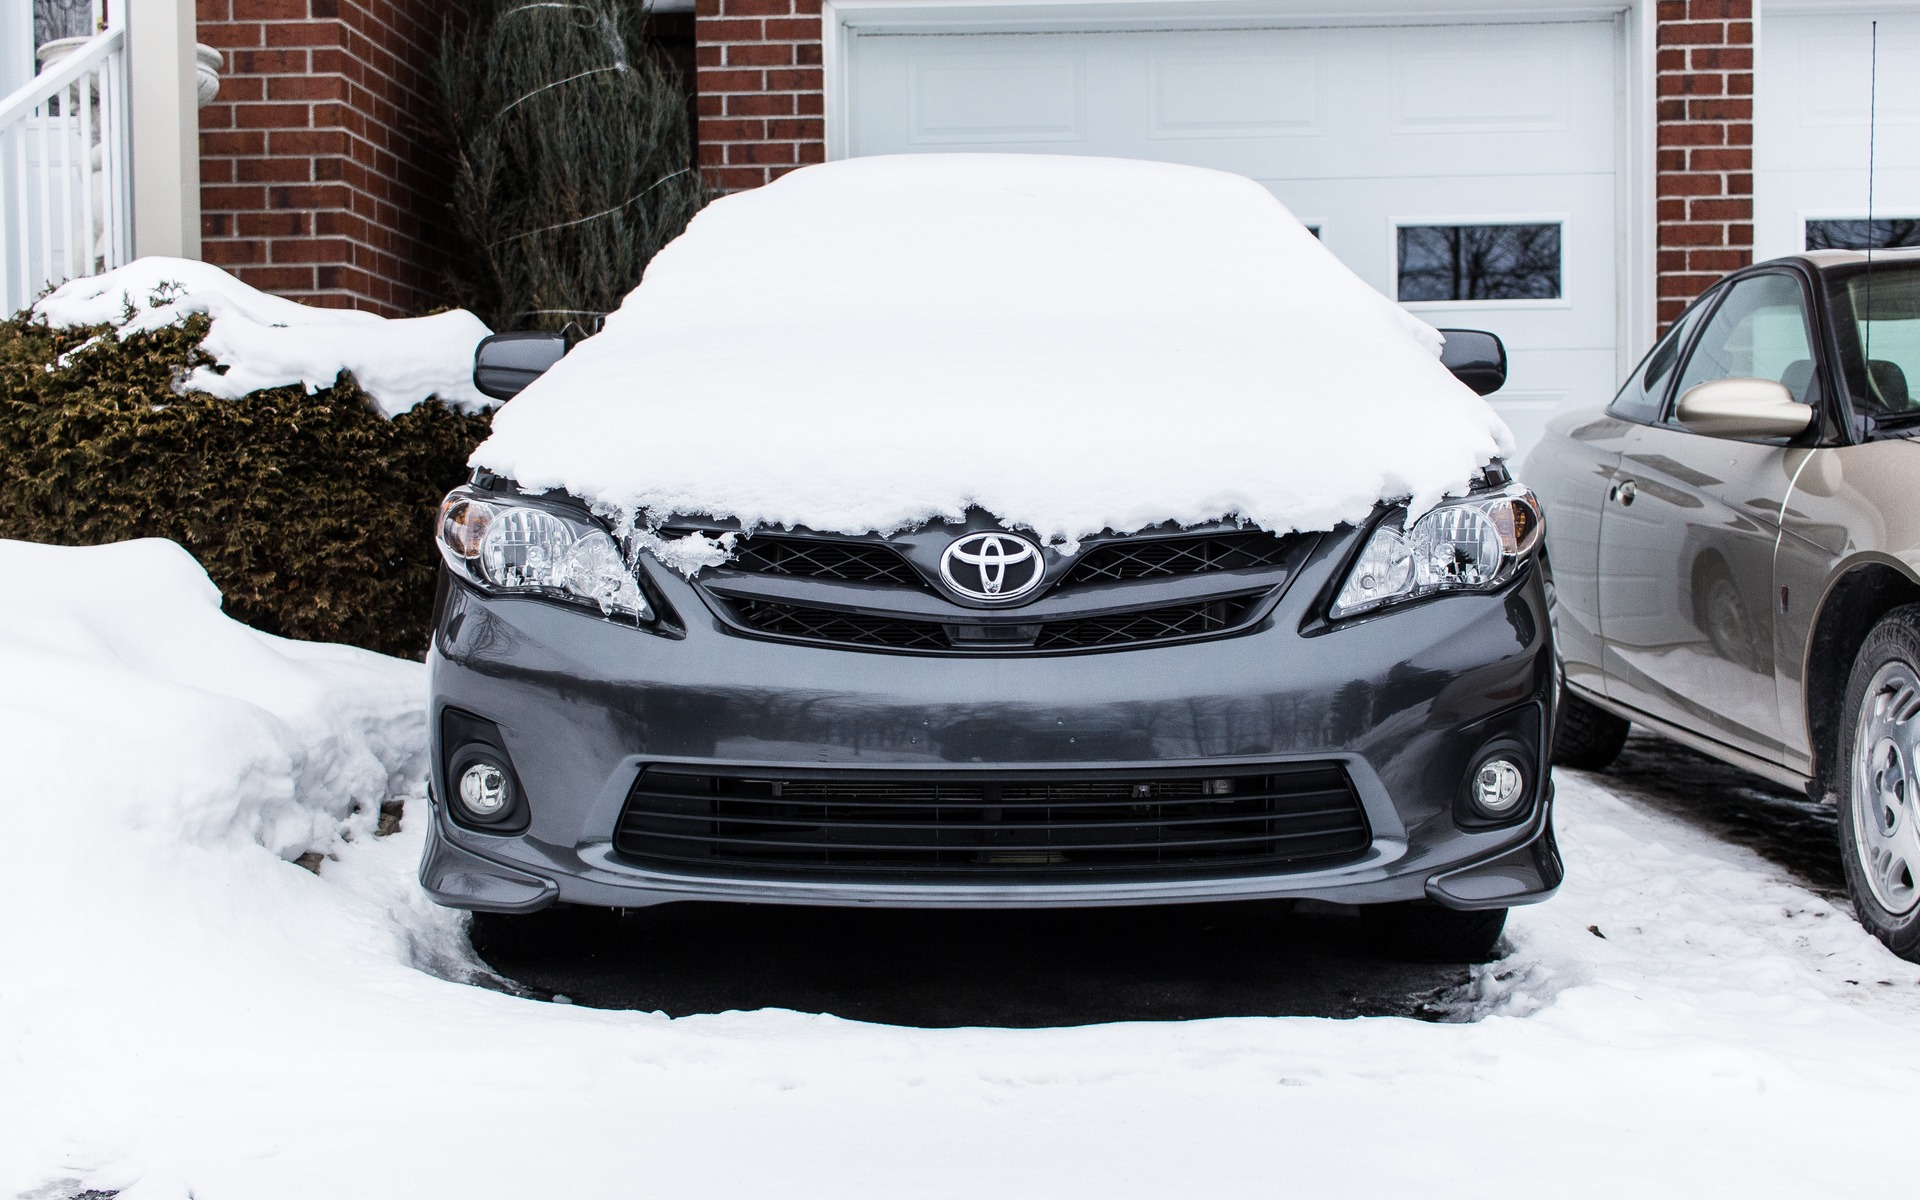 Bein Tv Grille Car In The Garage In Winter Good Or Bad The Car Guide